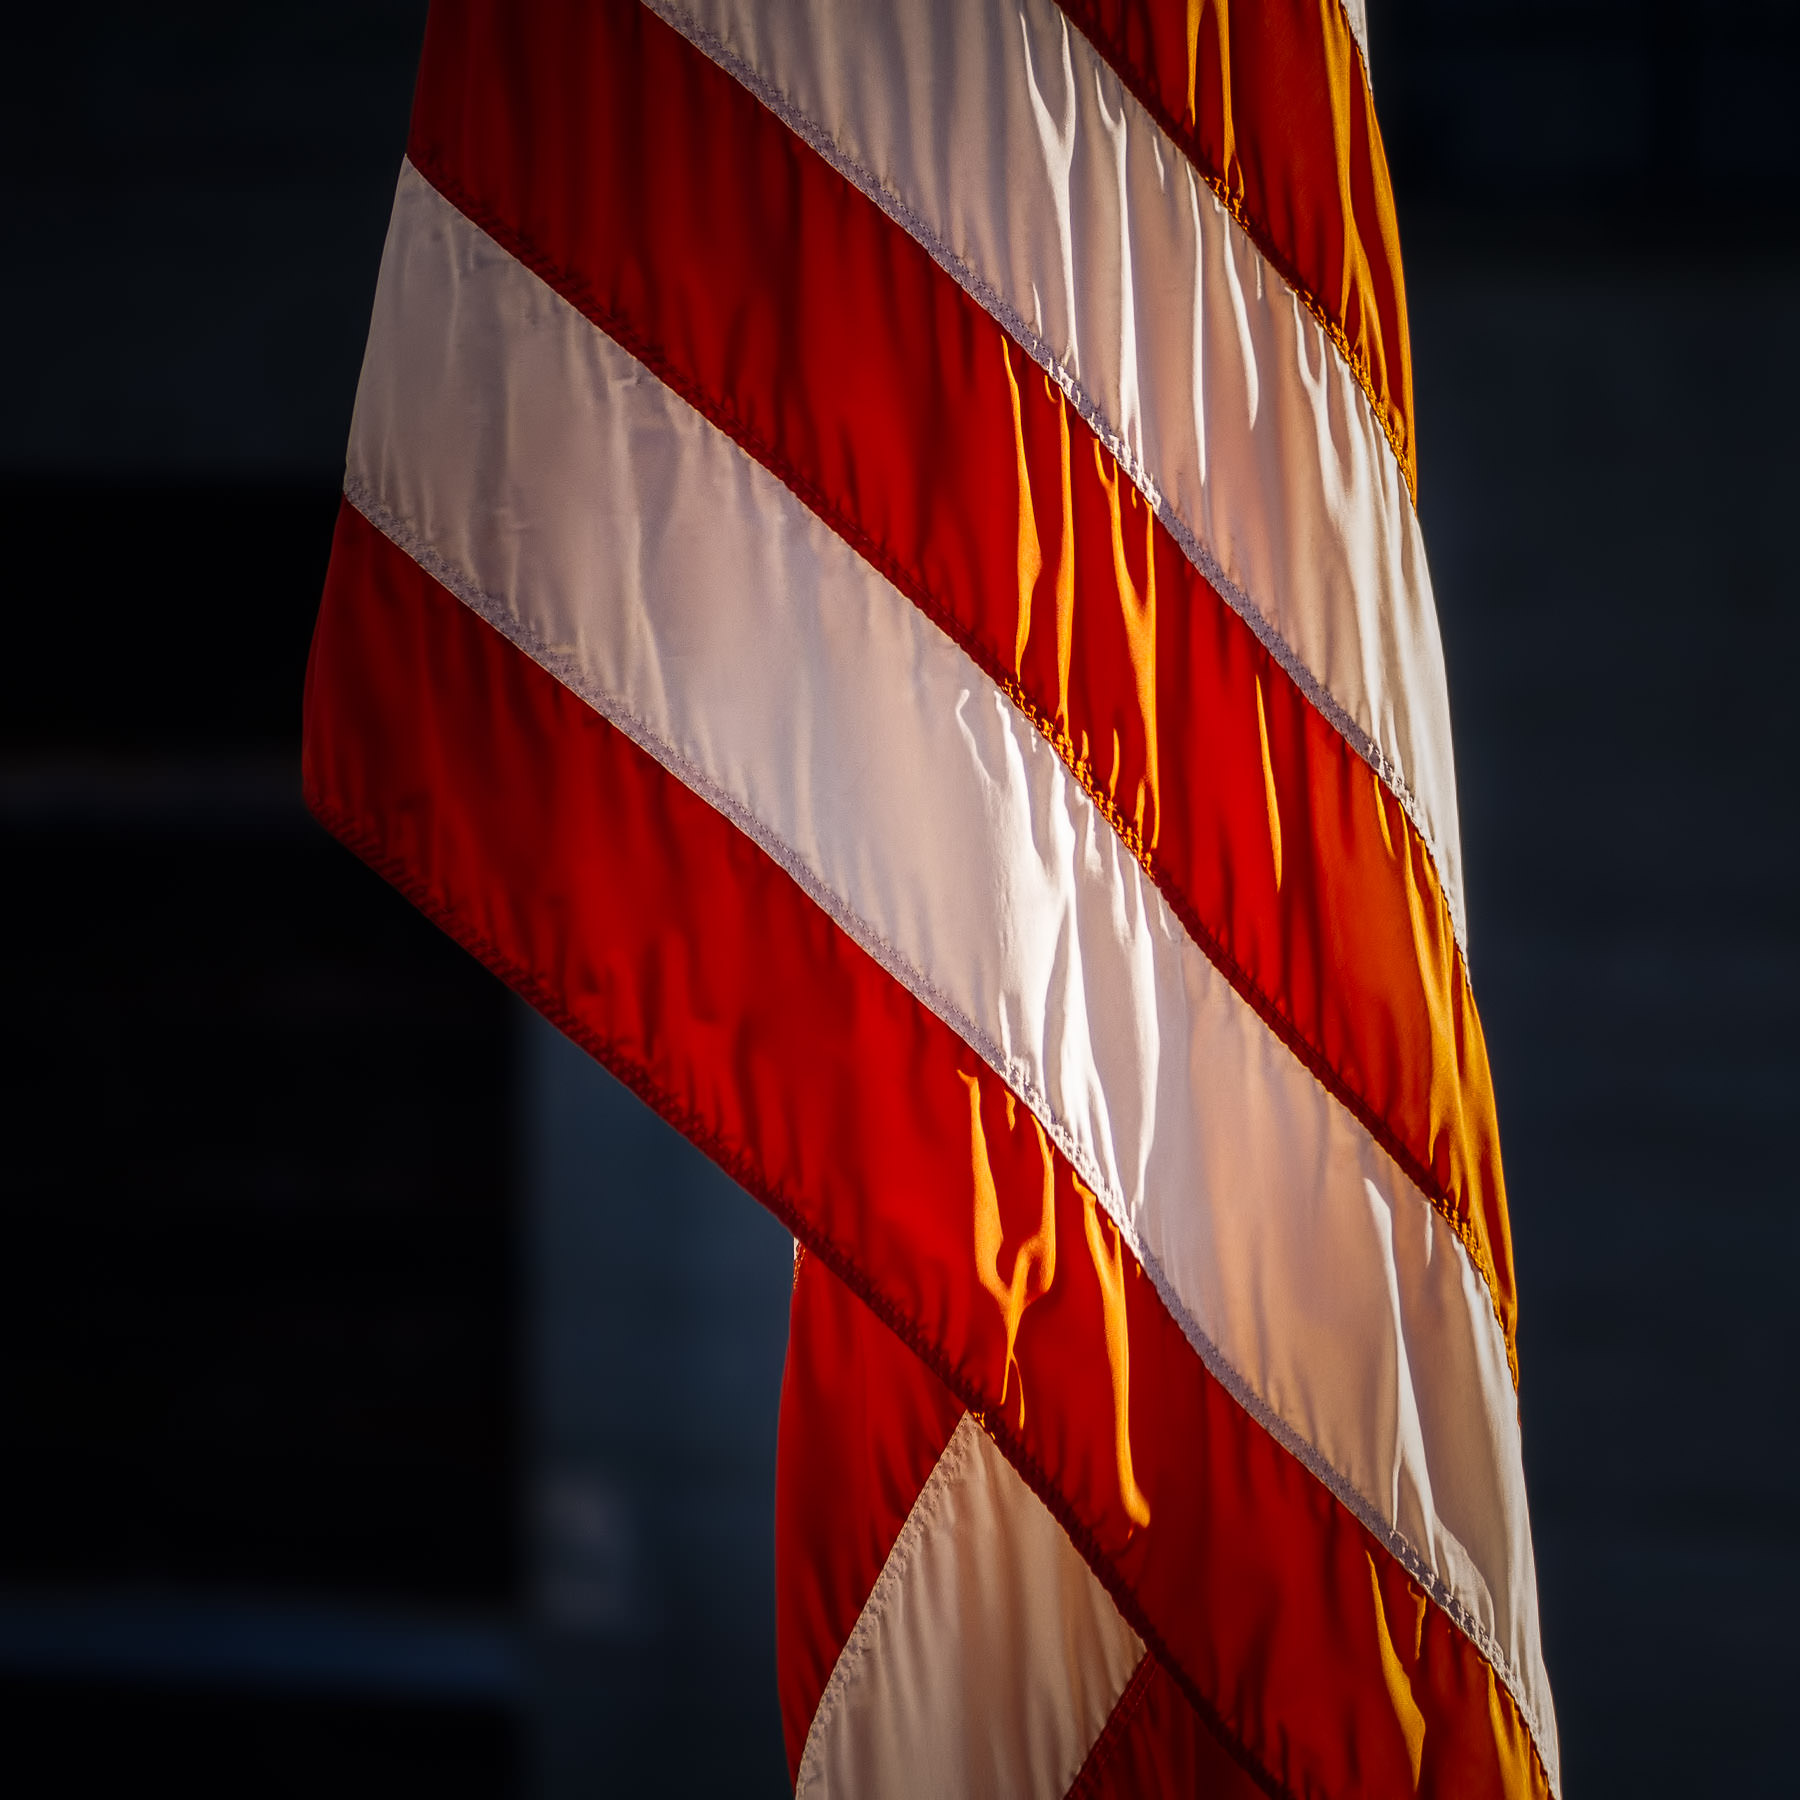 Detail of an American flag spotted at San Francisco's Pier 33, the embarkation point for cruises to Alcatraz Island.